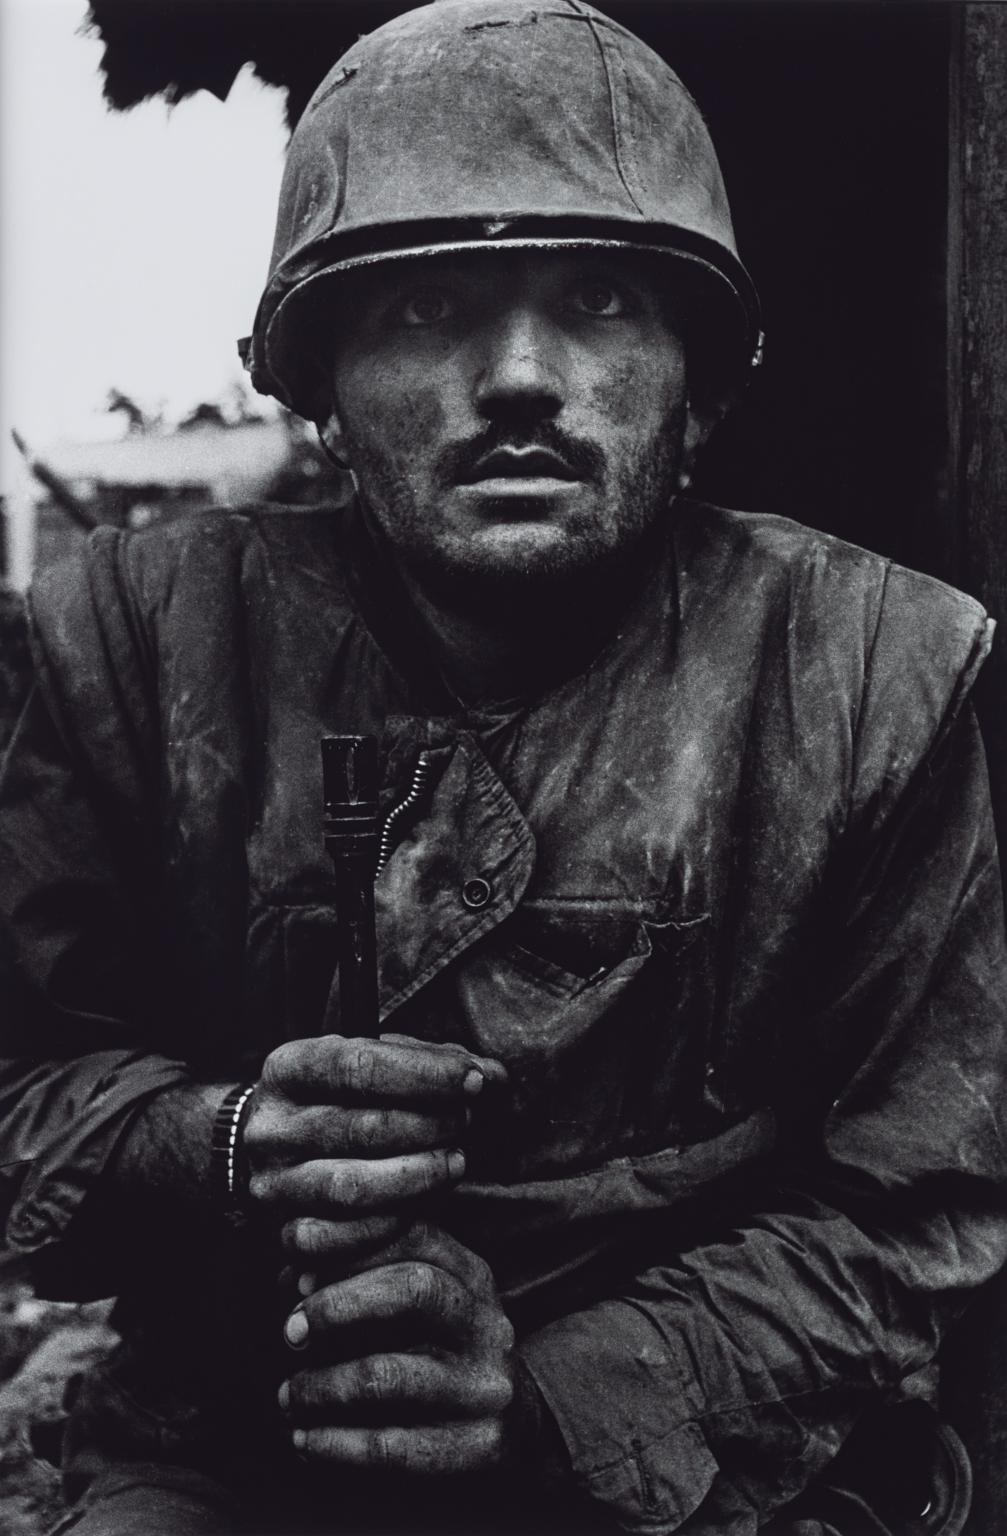 Shell-shocked US Marine, The Battle of Hue 1968, printed 2013 by Don McCullin born 1935